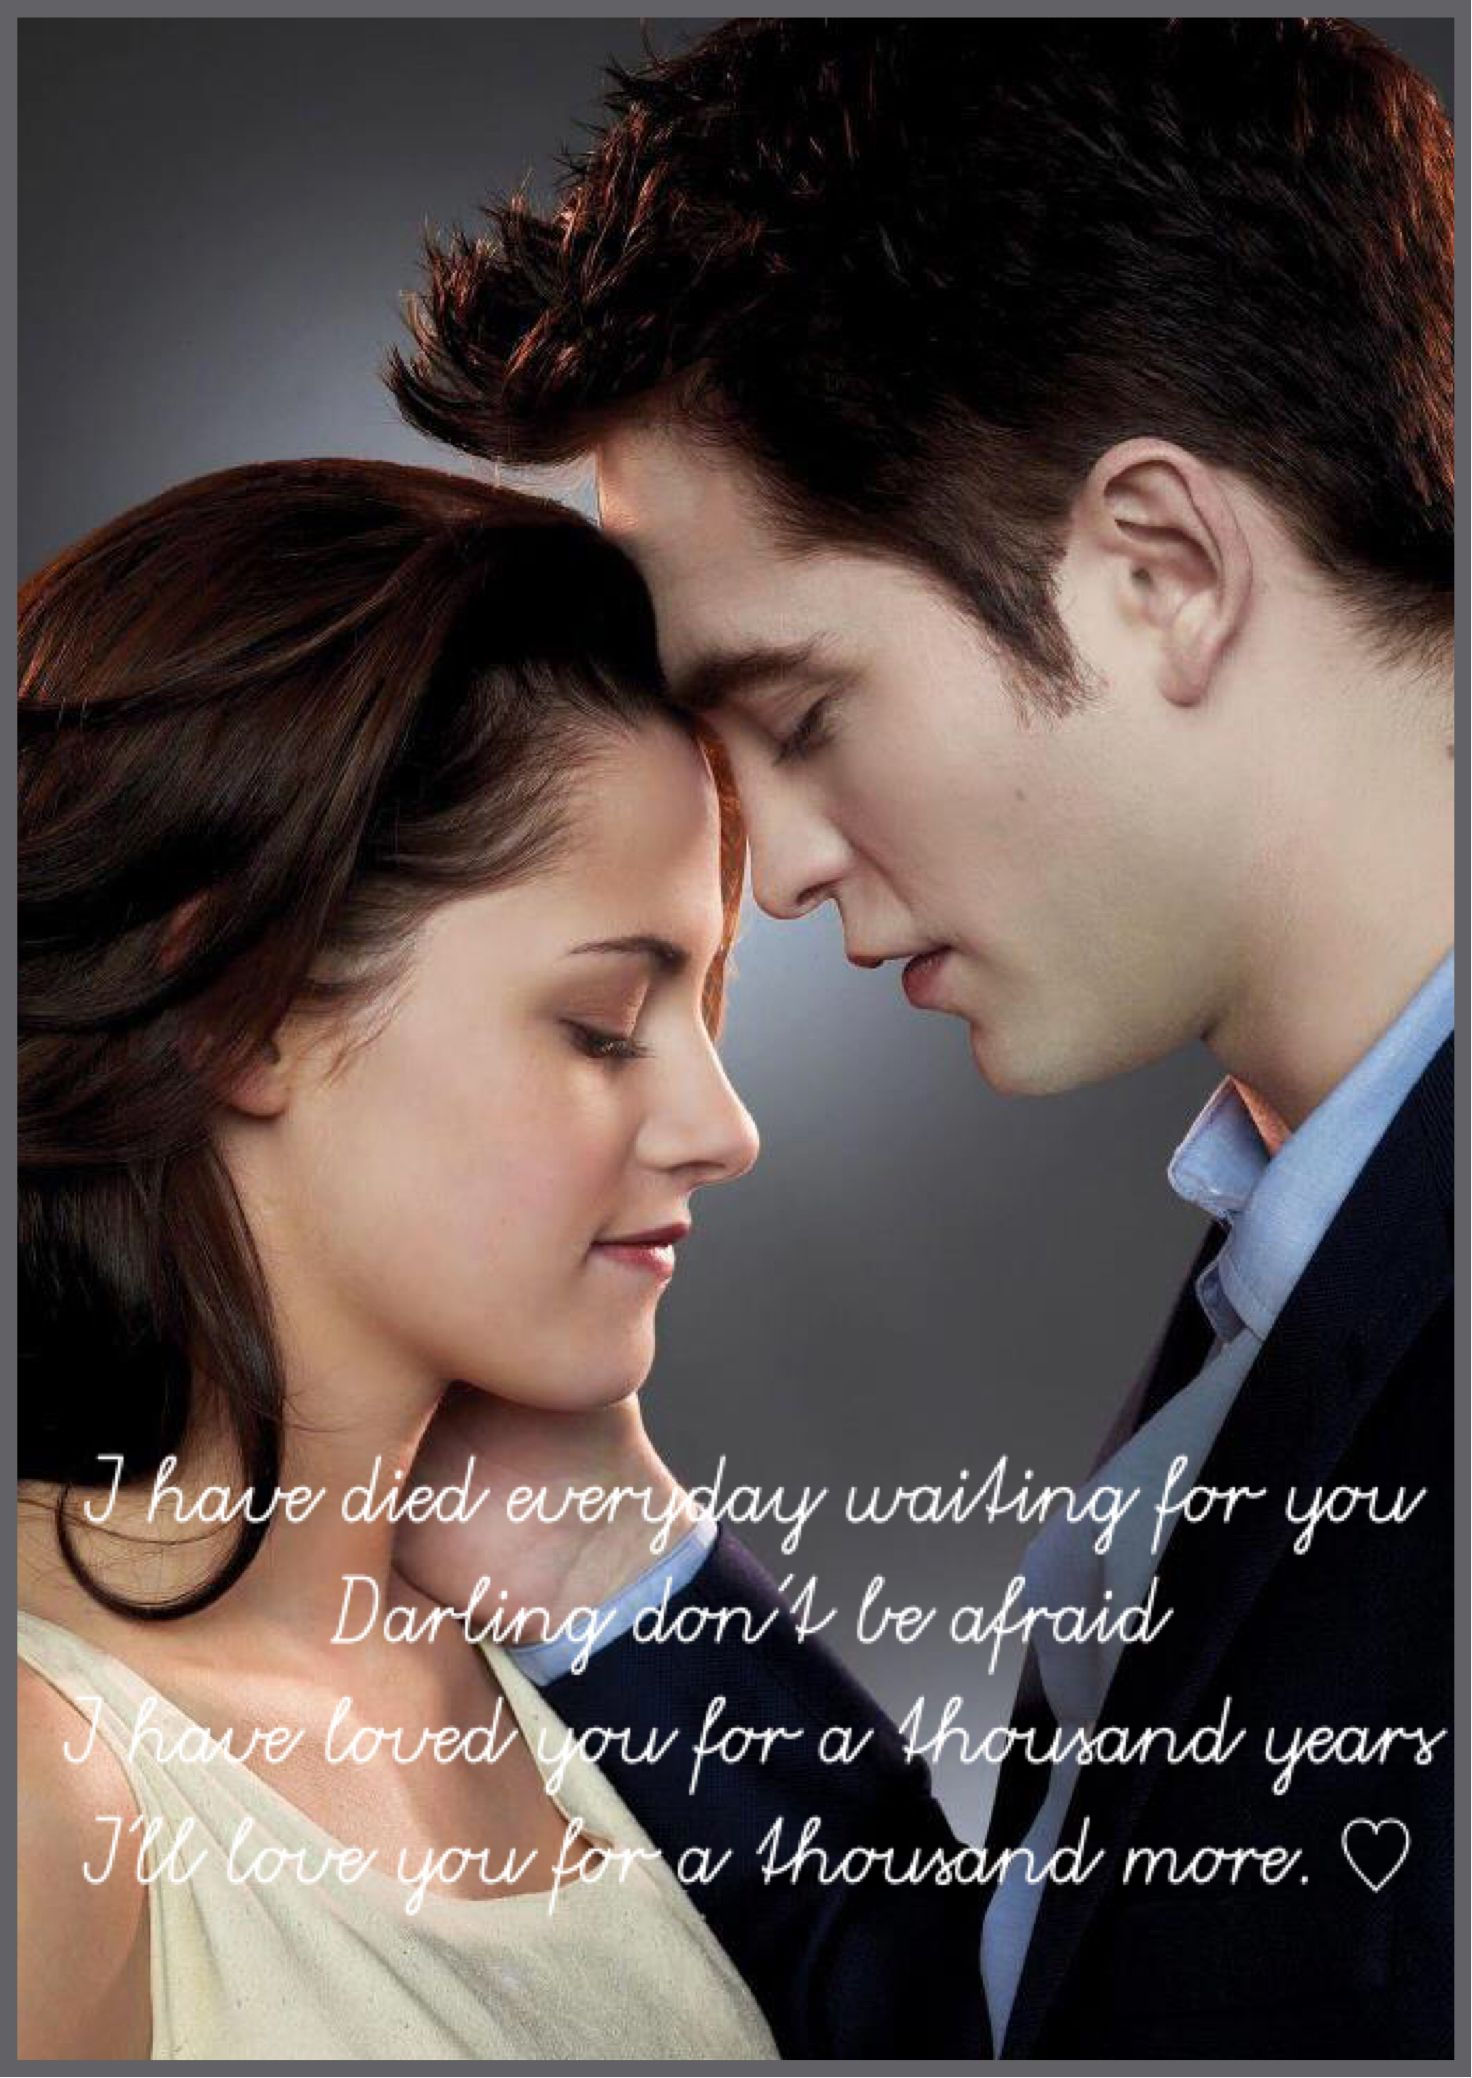 This Is The Kind Of Love I Want Lovelikebellaandedward Twilight Saga Quotes Twilight Film Twilight Quotes